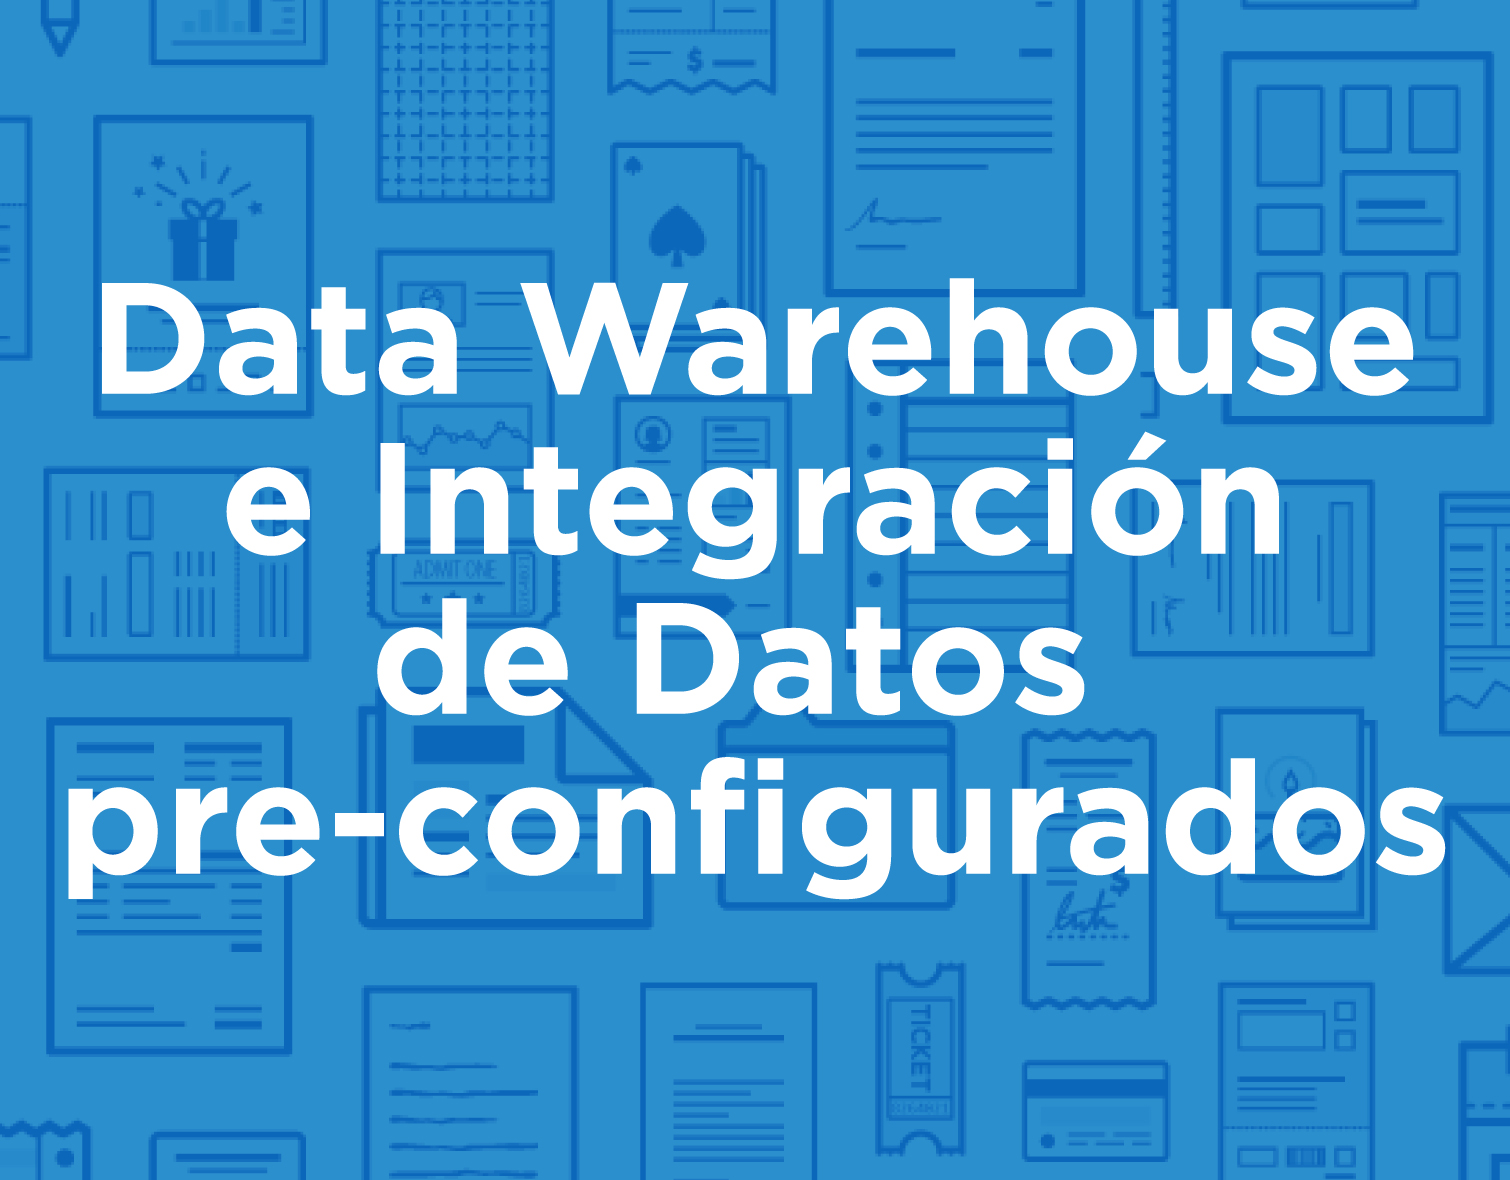 icon_products_spa_Data-Warehouse-e-Integracion-Datos.jpg